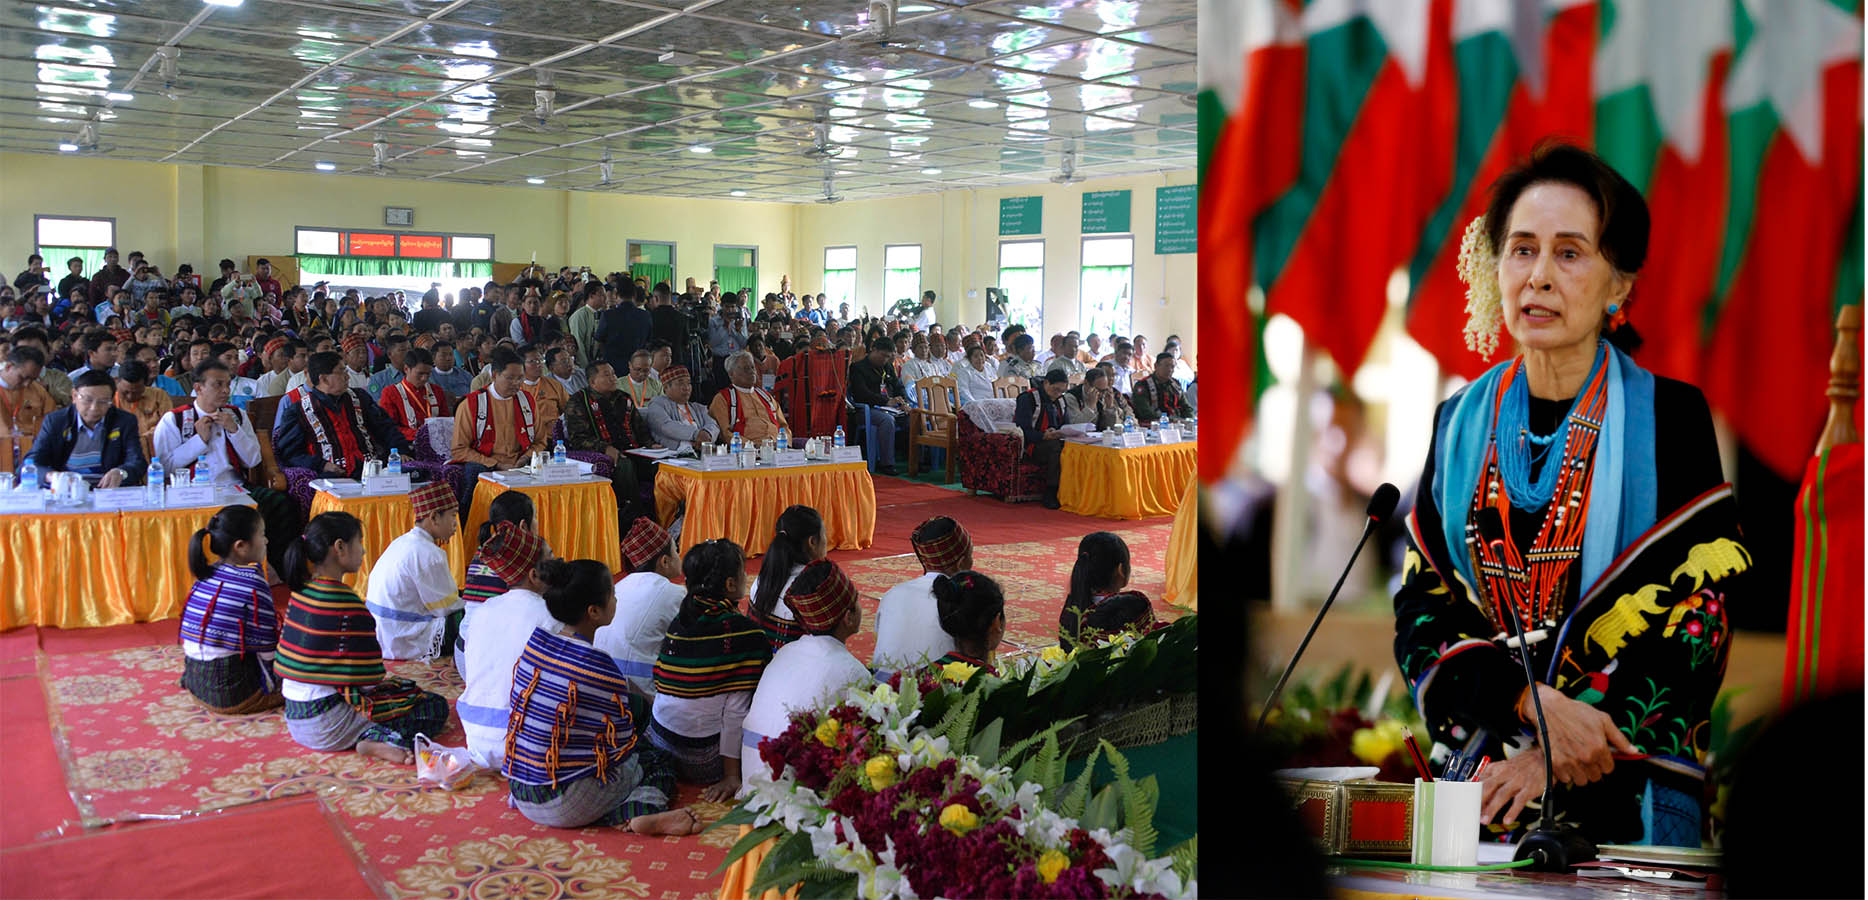 State Counsellor Daw Aung San Suu Kyi delivers the speech during the meeting with local people in Nanyun Township in Sagaing Region yesterday. Photo: MNA